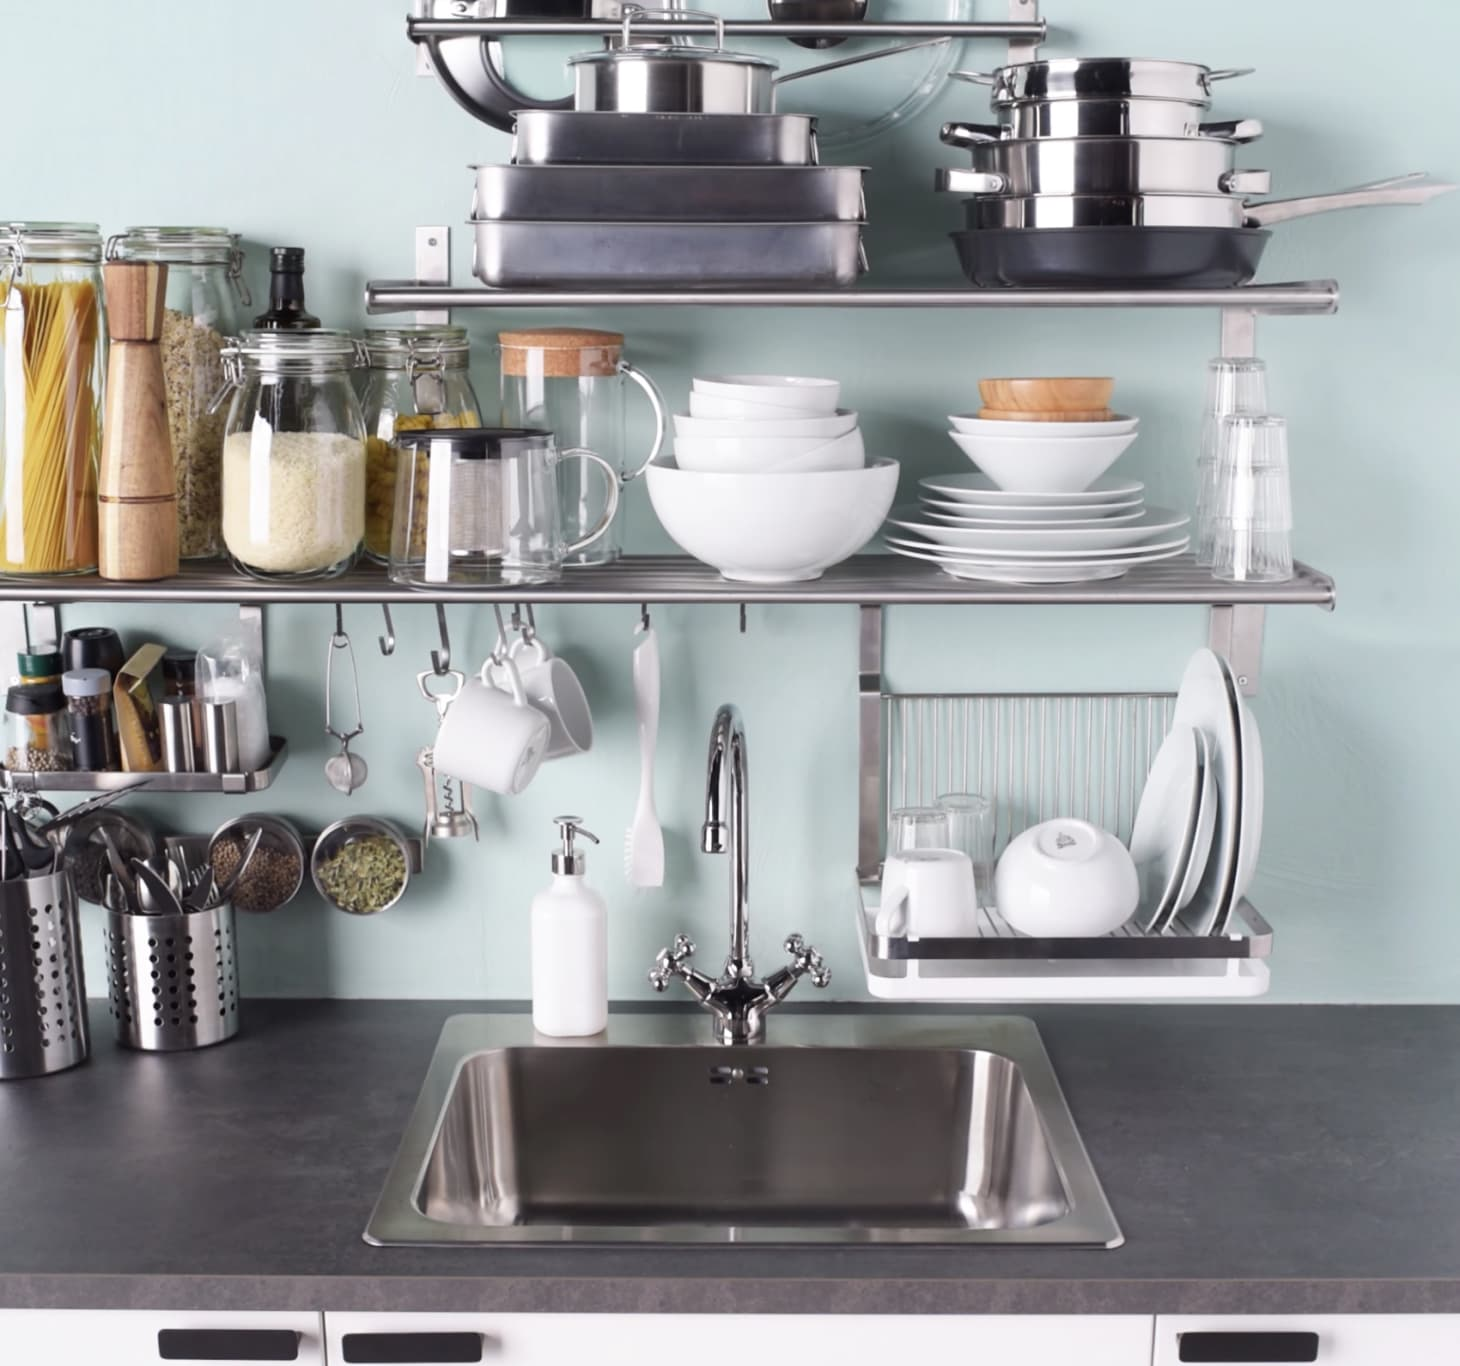 IKEA GRUNDTAL Kitchen Organizing Ideas | Apartment Therapy on updated kitchen remodels, updated kitchen walls, updated decorating ideas, updated small kitchens, updated living rooms, updated cabinet hardware, updated kitchens in old houses, updated wet bar ideas, updated kitchen lighting, updated galley kitchen, updated kitchen plans, updated kitchen flooring, updated kitchens before after, updated modern kitchens, updated white kitchens, updated bedroom ideas, updated hallway ideas, updated oak kitchen cabinets makeover, updated fireplace ideas, updated traditional decorating,